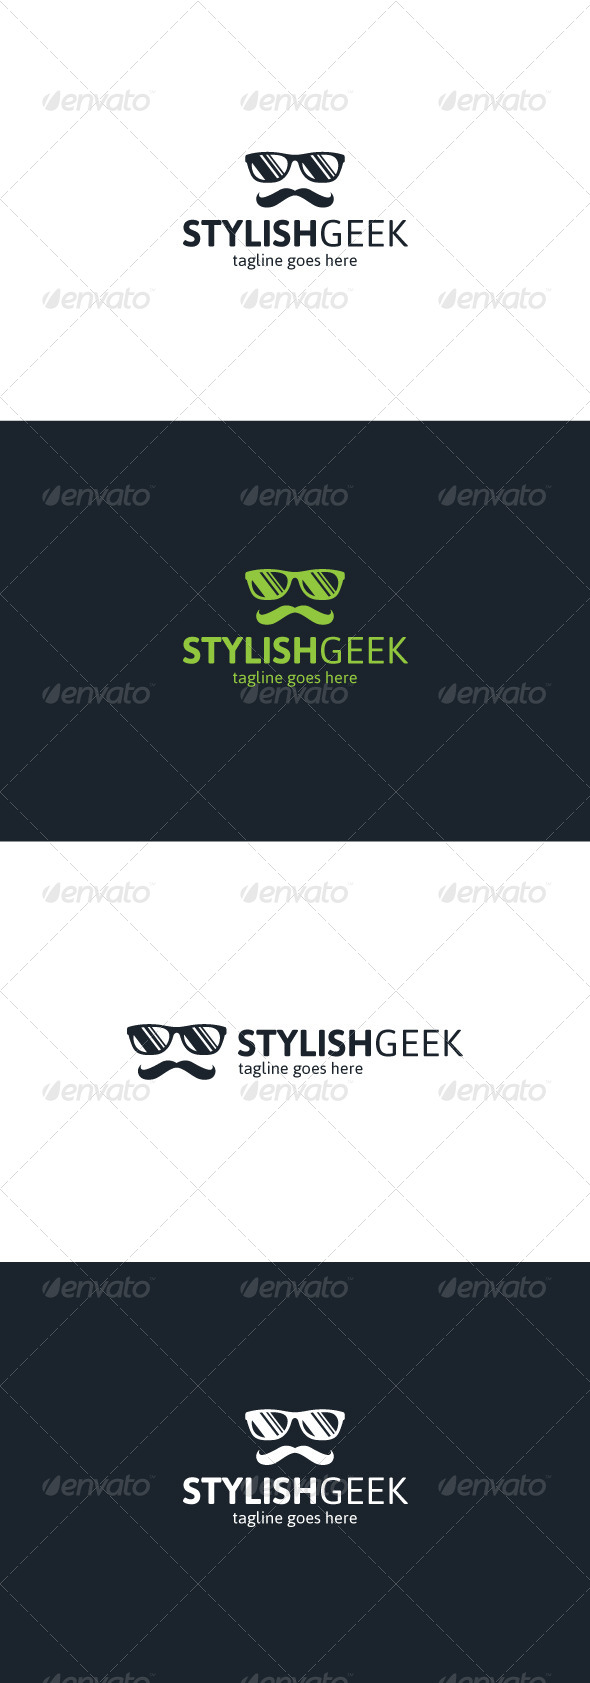 GraphicRiver Stylish Geek Logo 8241559